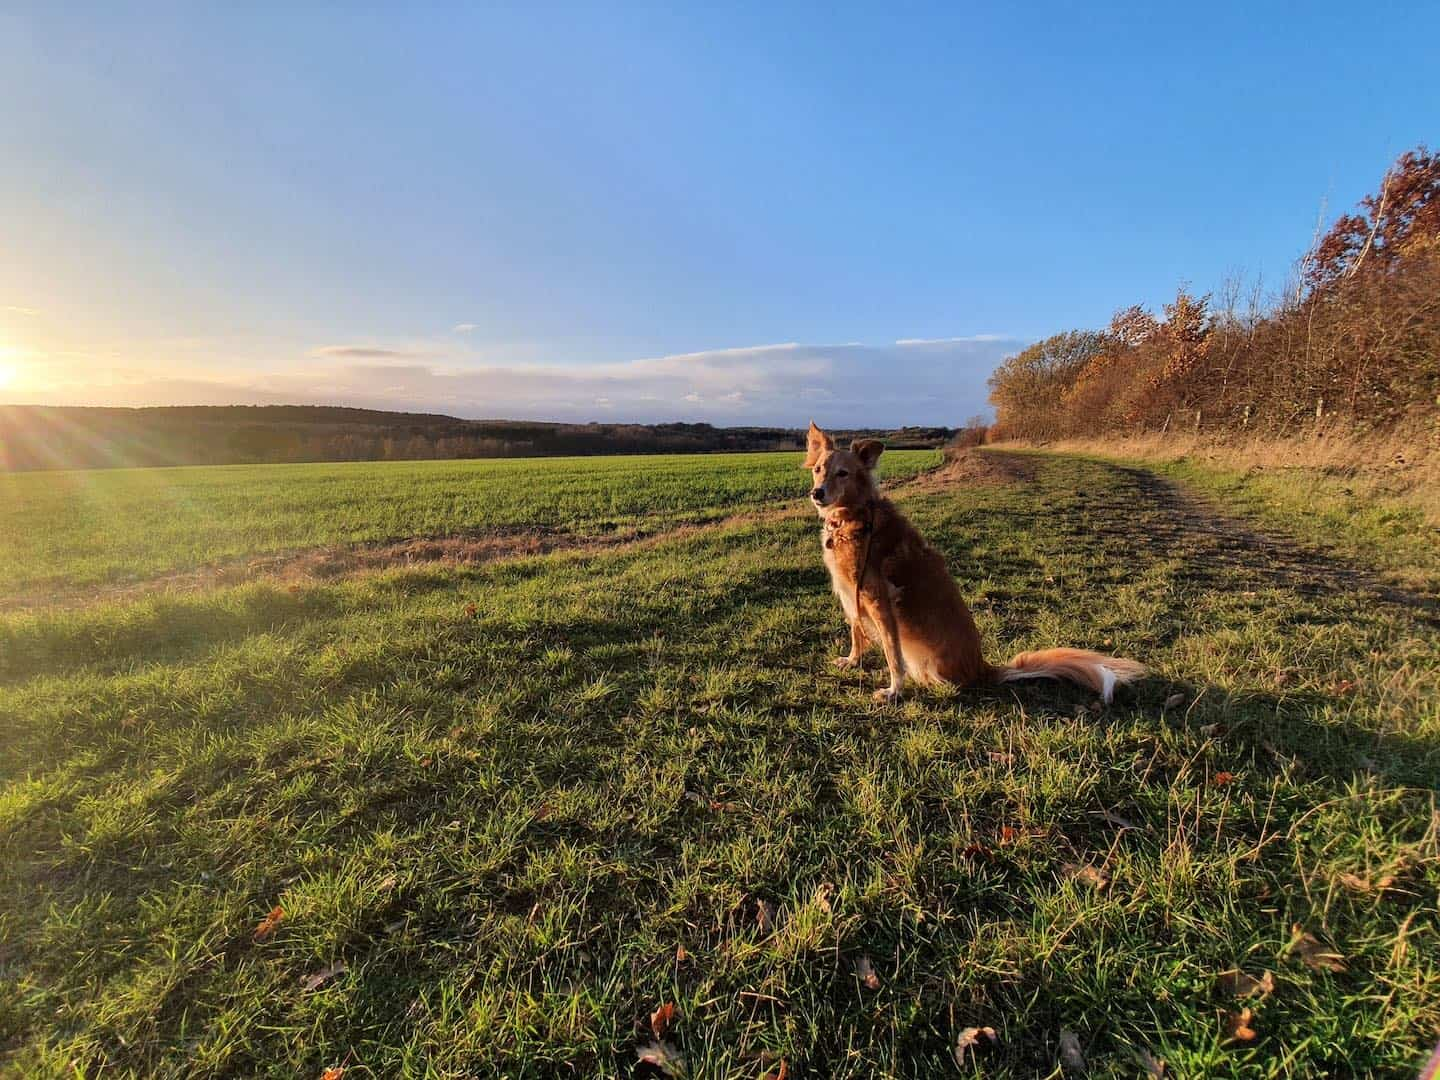 Beautie the 3-legged Rescue Dog from Dubai enjoying the English countryside